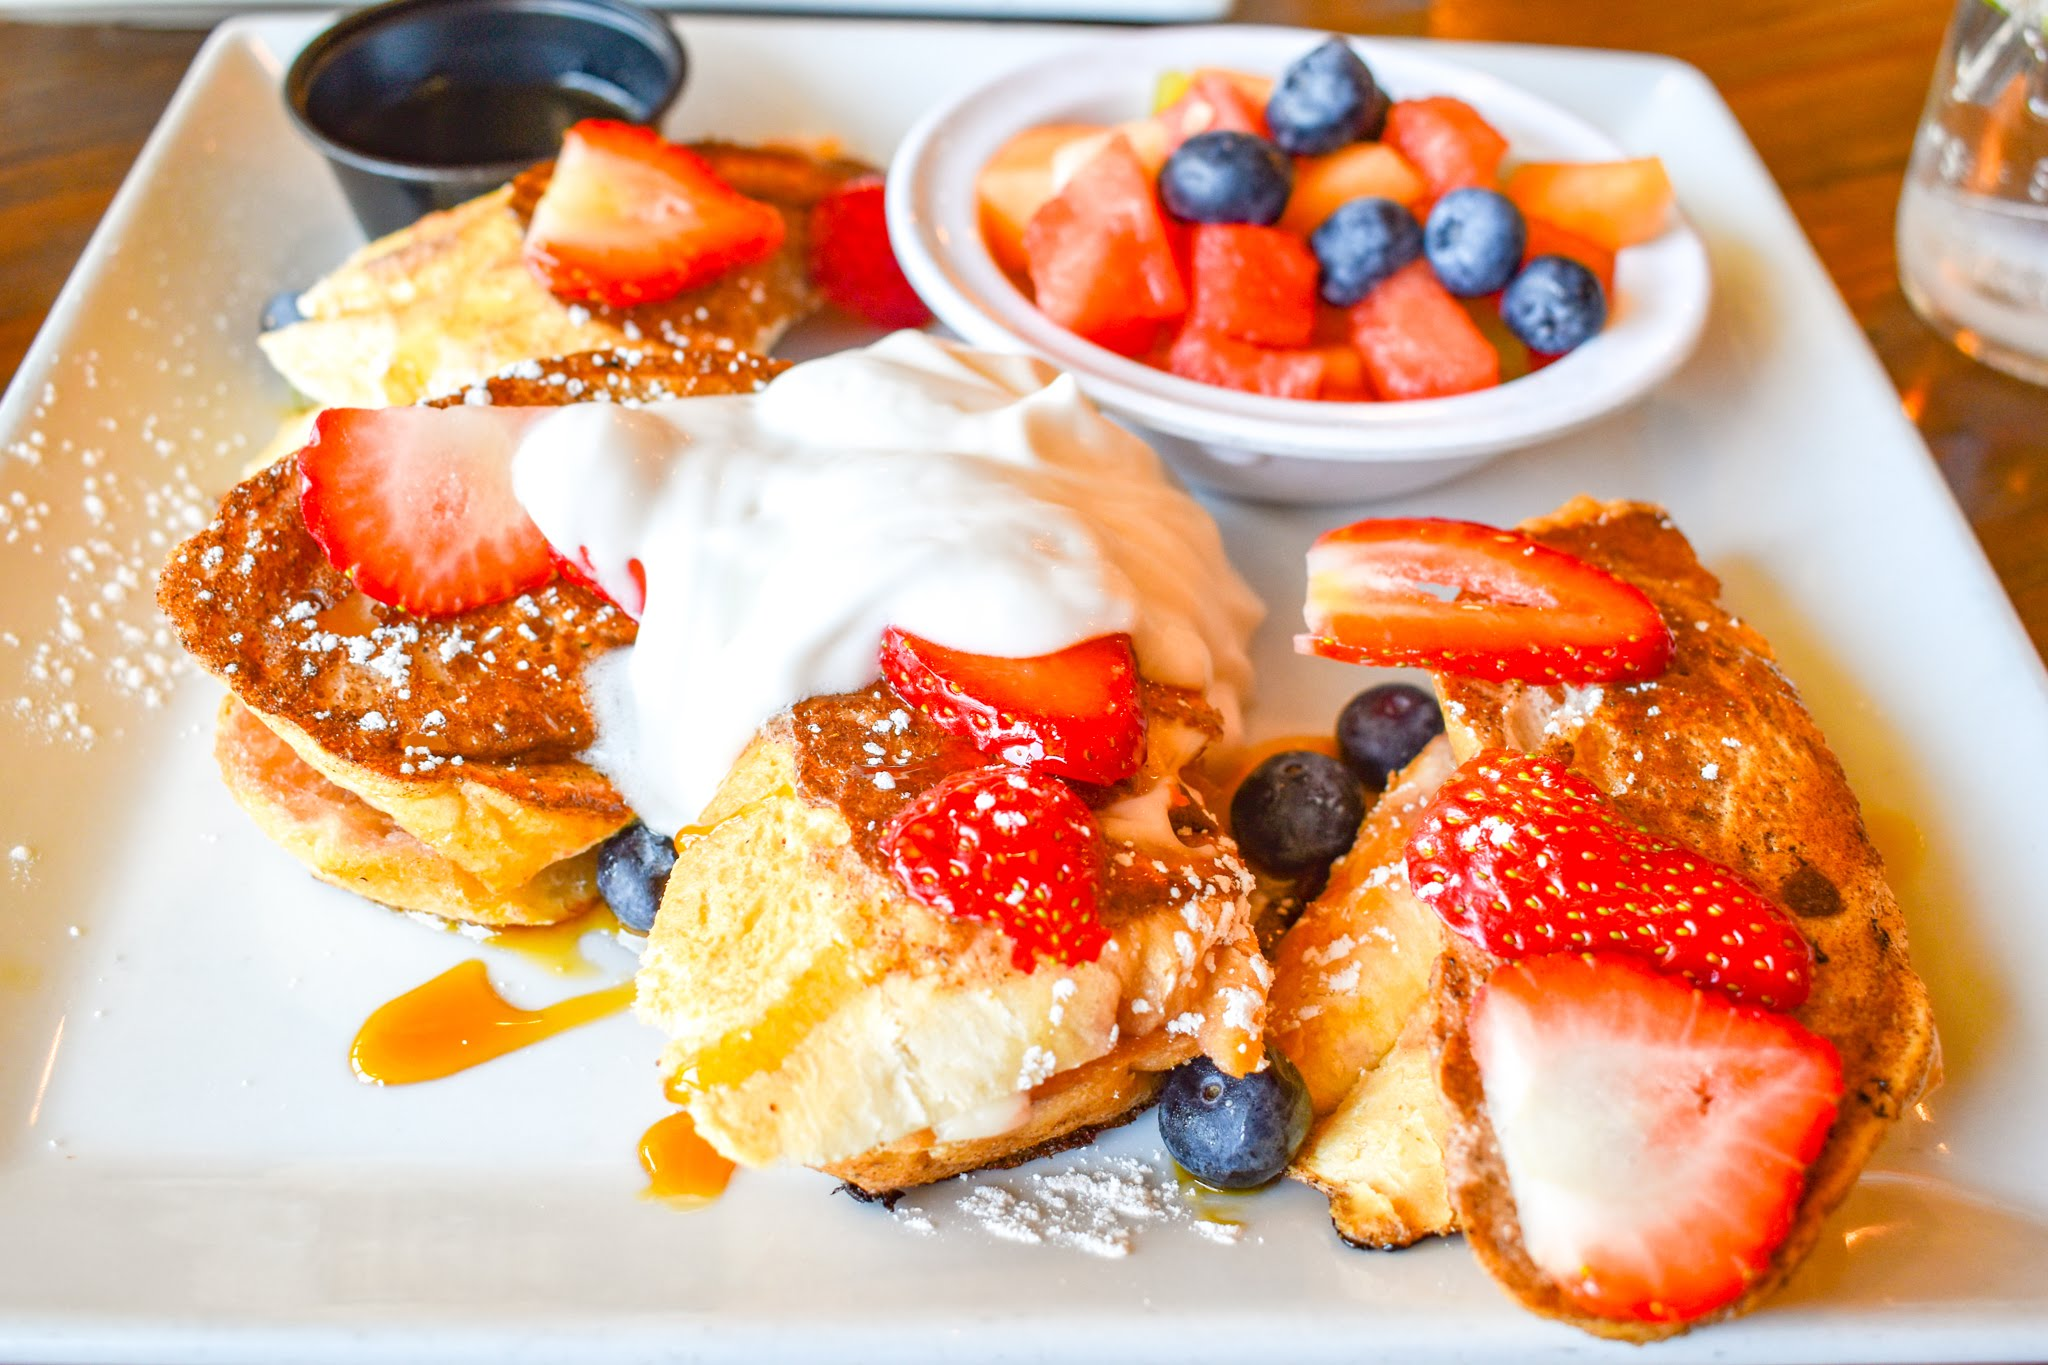 Uprooted-Traveler-Vegan-on-Fremont-Street-Las-Vegas-vegenation-french-toast-brunch.jpg